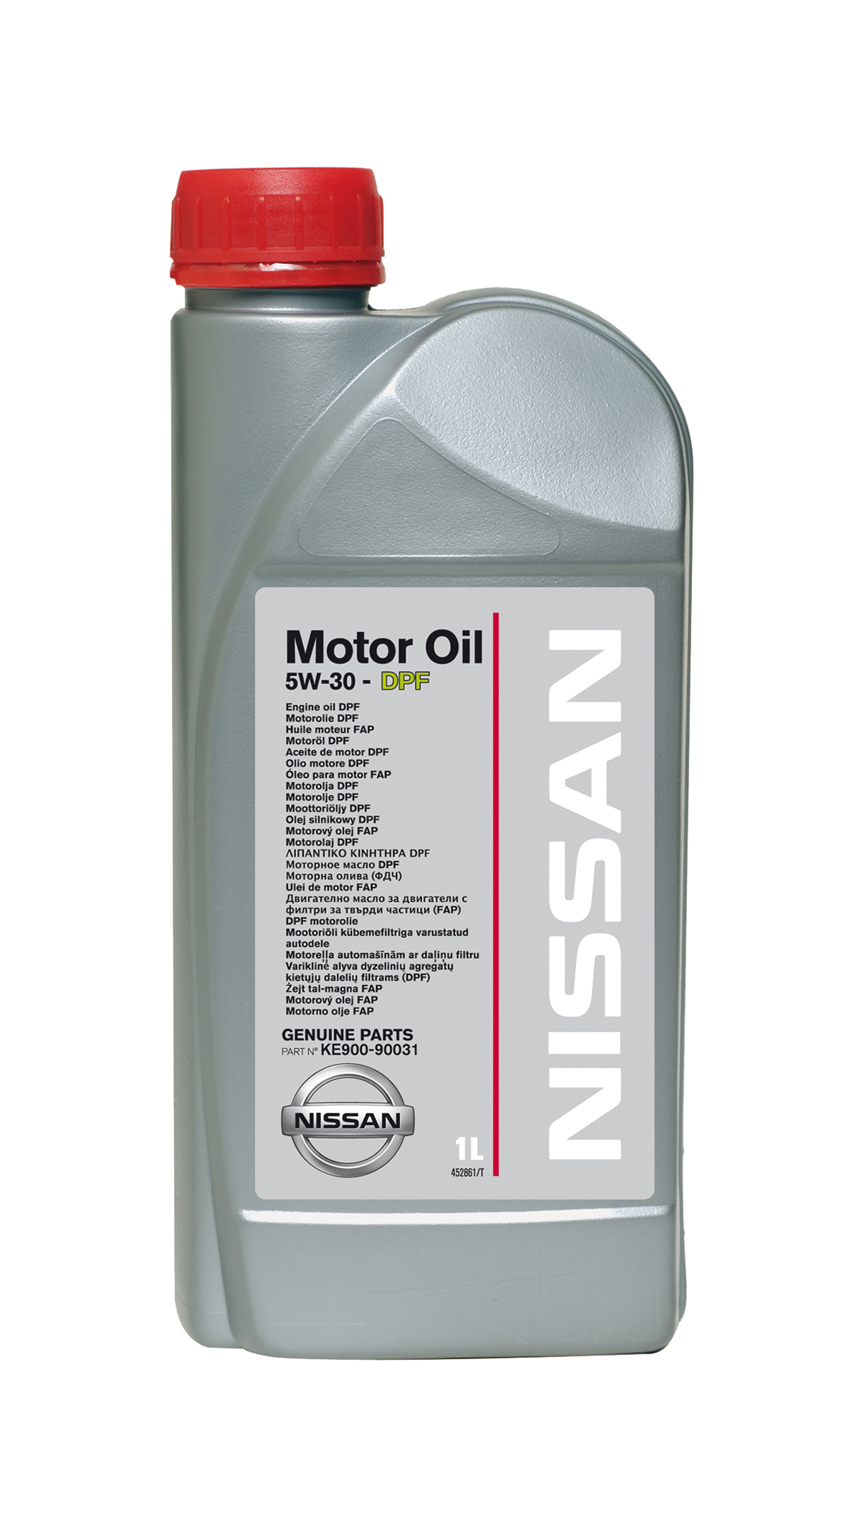 Services-genuine-oil-motor-oil.jpg